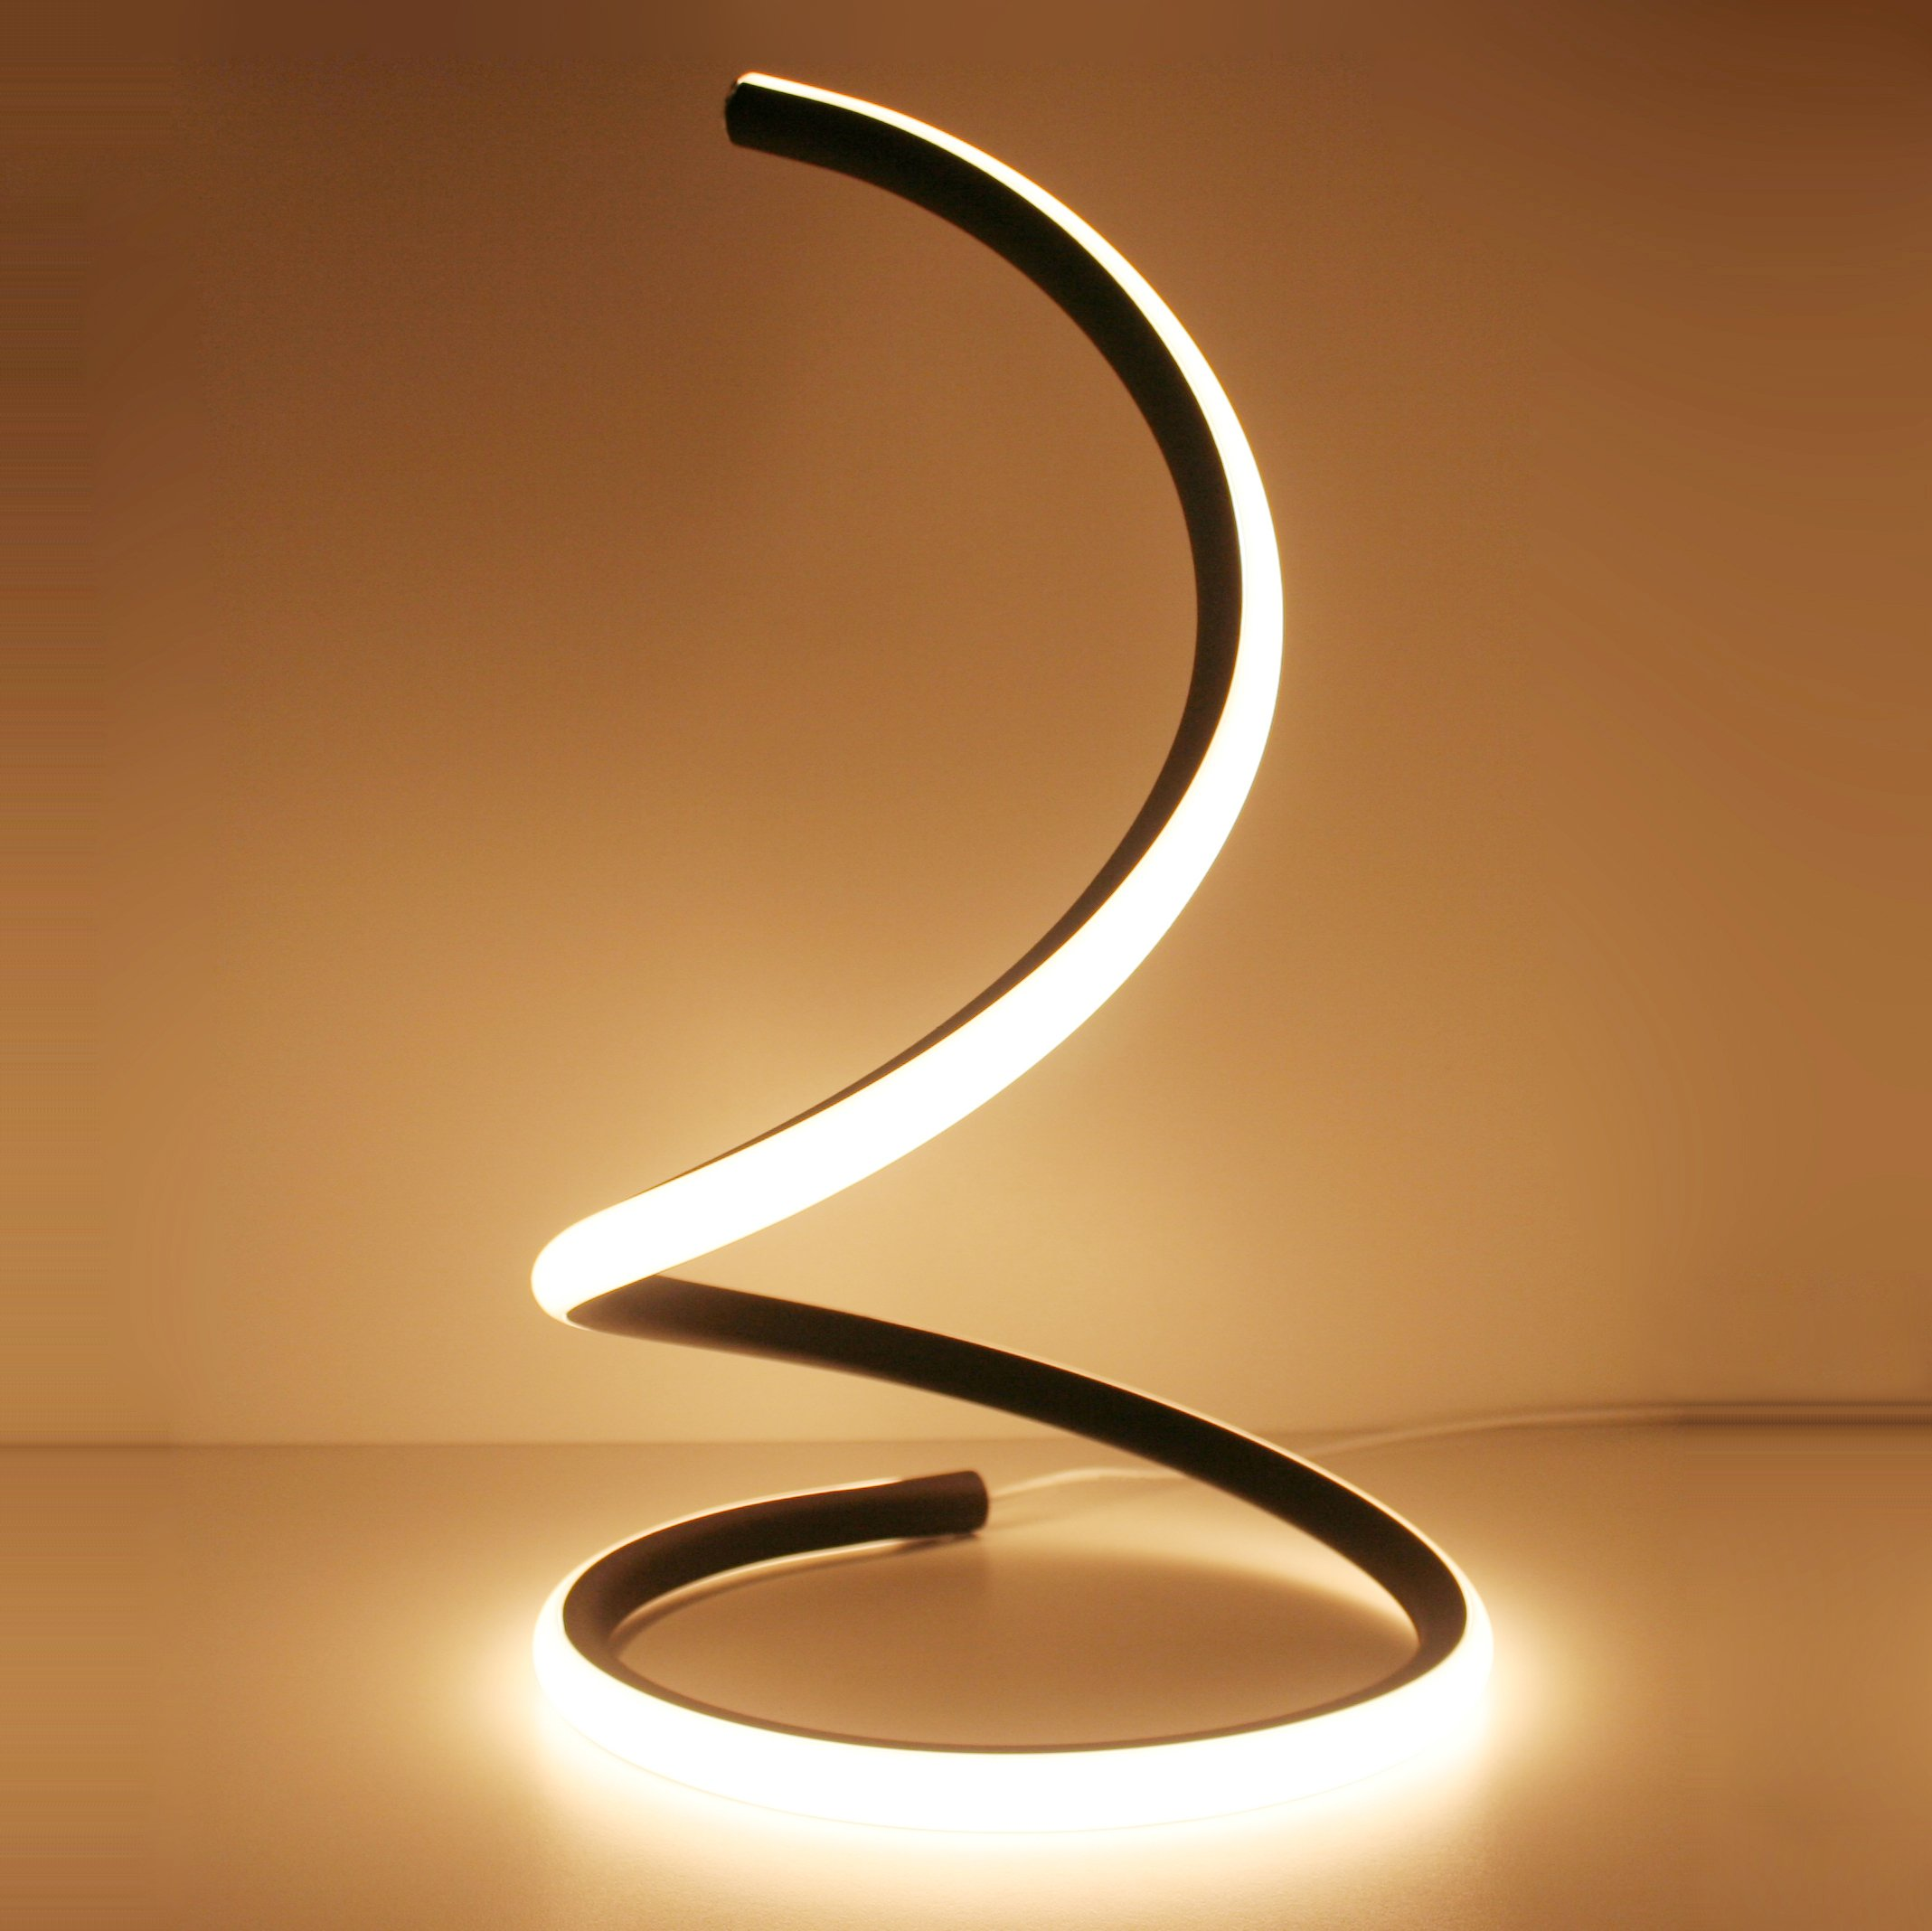 Furniture Light Bulbs Beautiful Photo Led Light Bulbs For: Spiral LED Table Lamp Curved Desk Light Minimalist Warm